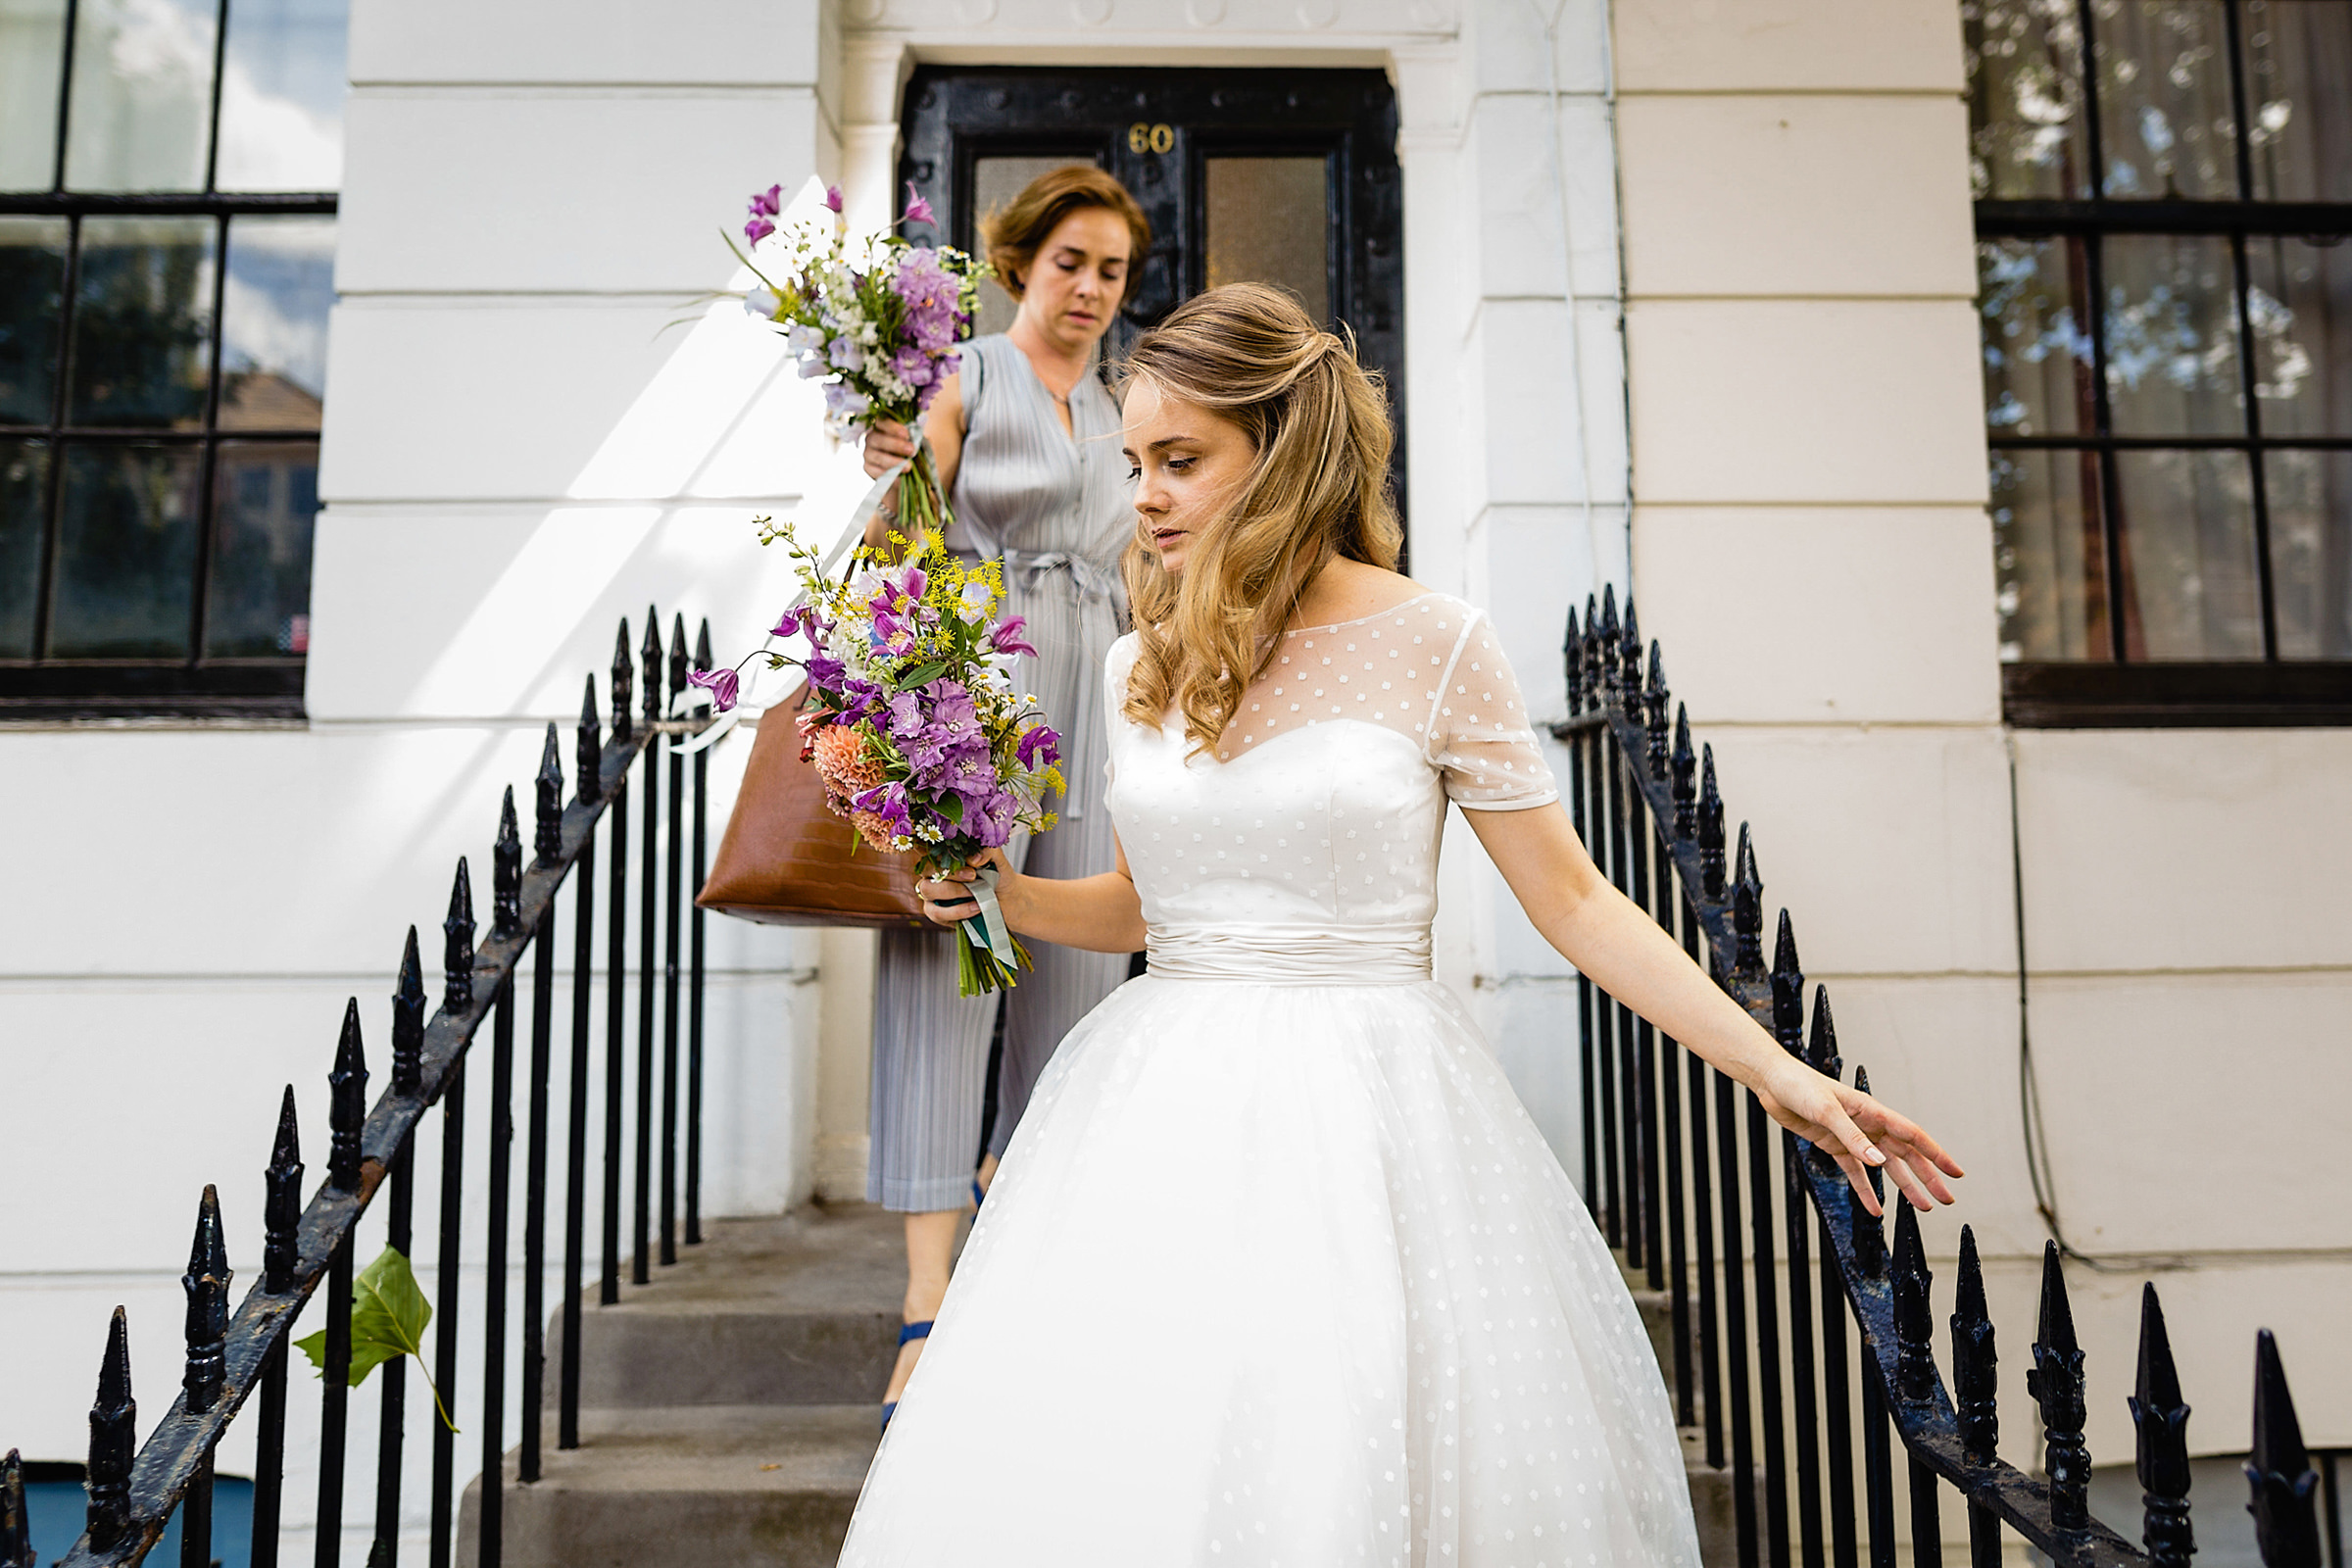 Bride and her mother carrying bouquets - photo by Emma + Rich